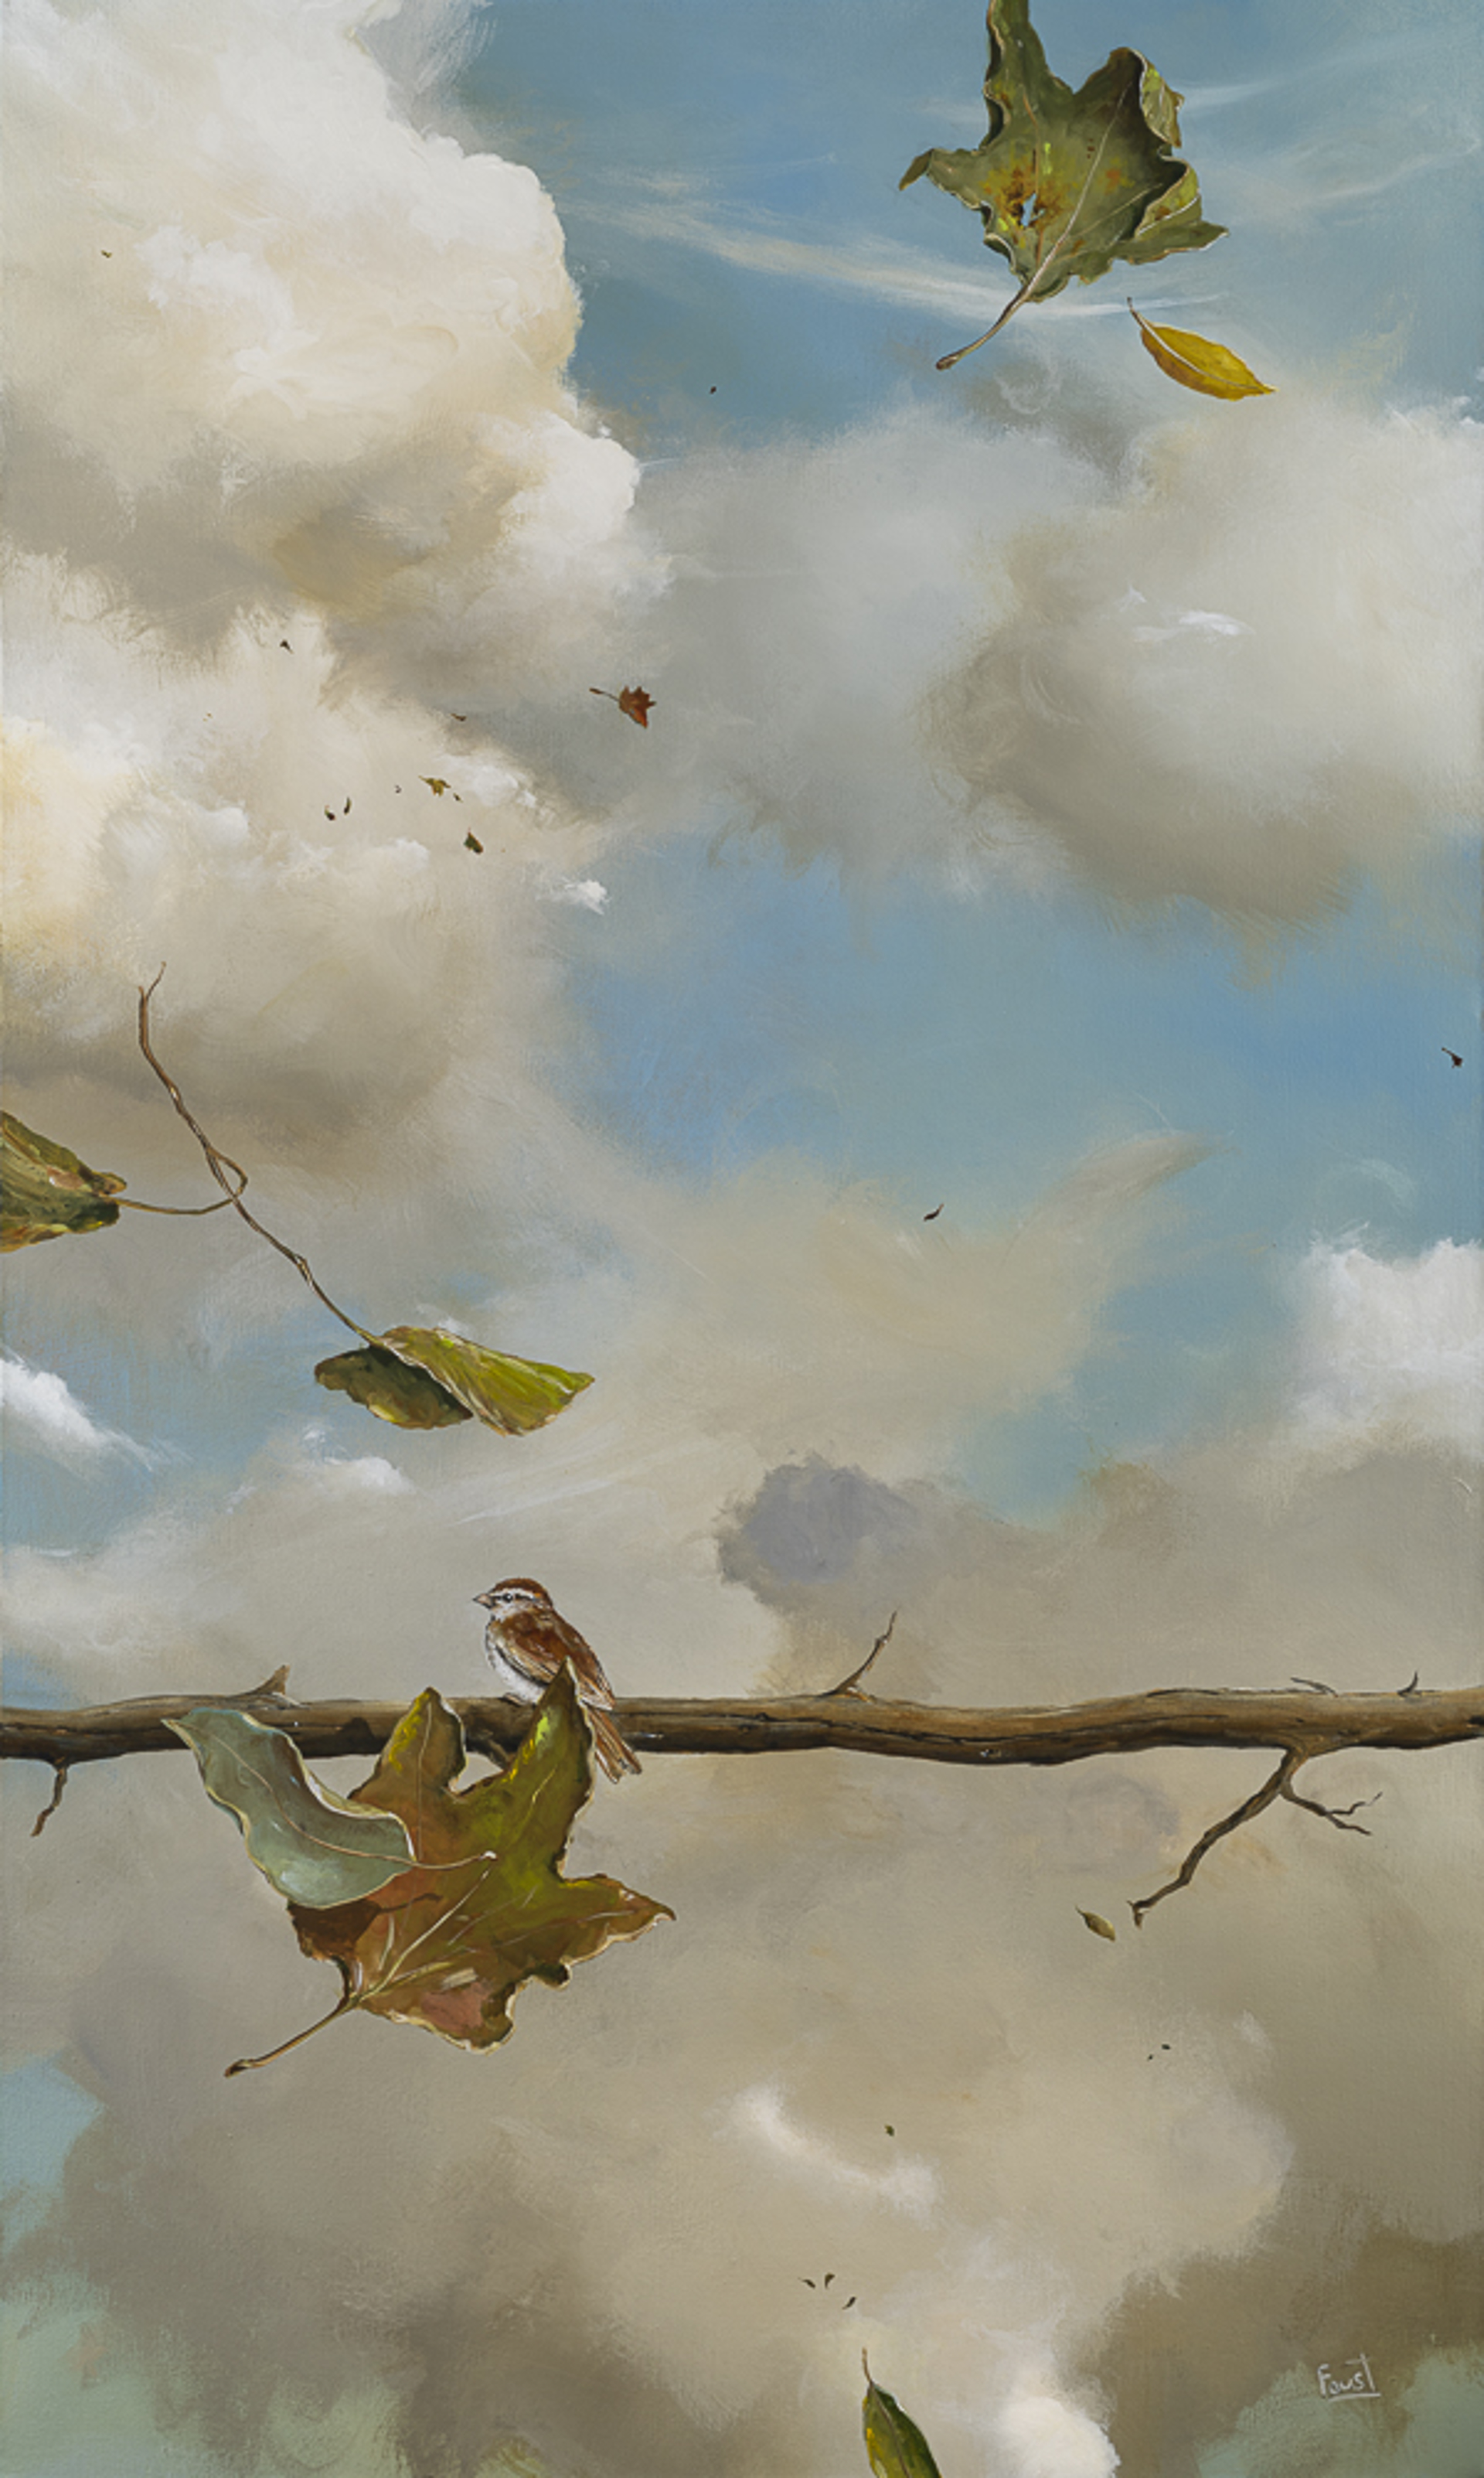 Alone with the Wind and Leaves by Jeff Faust